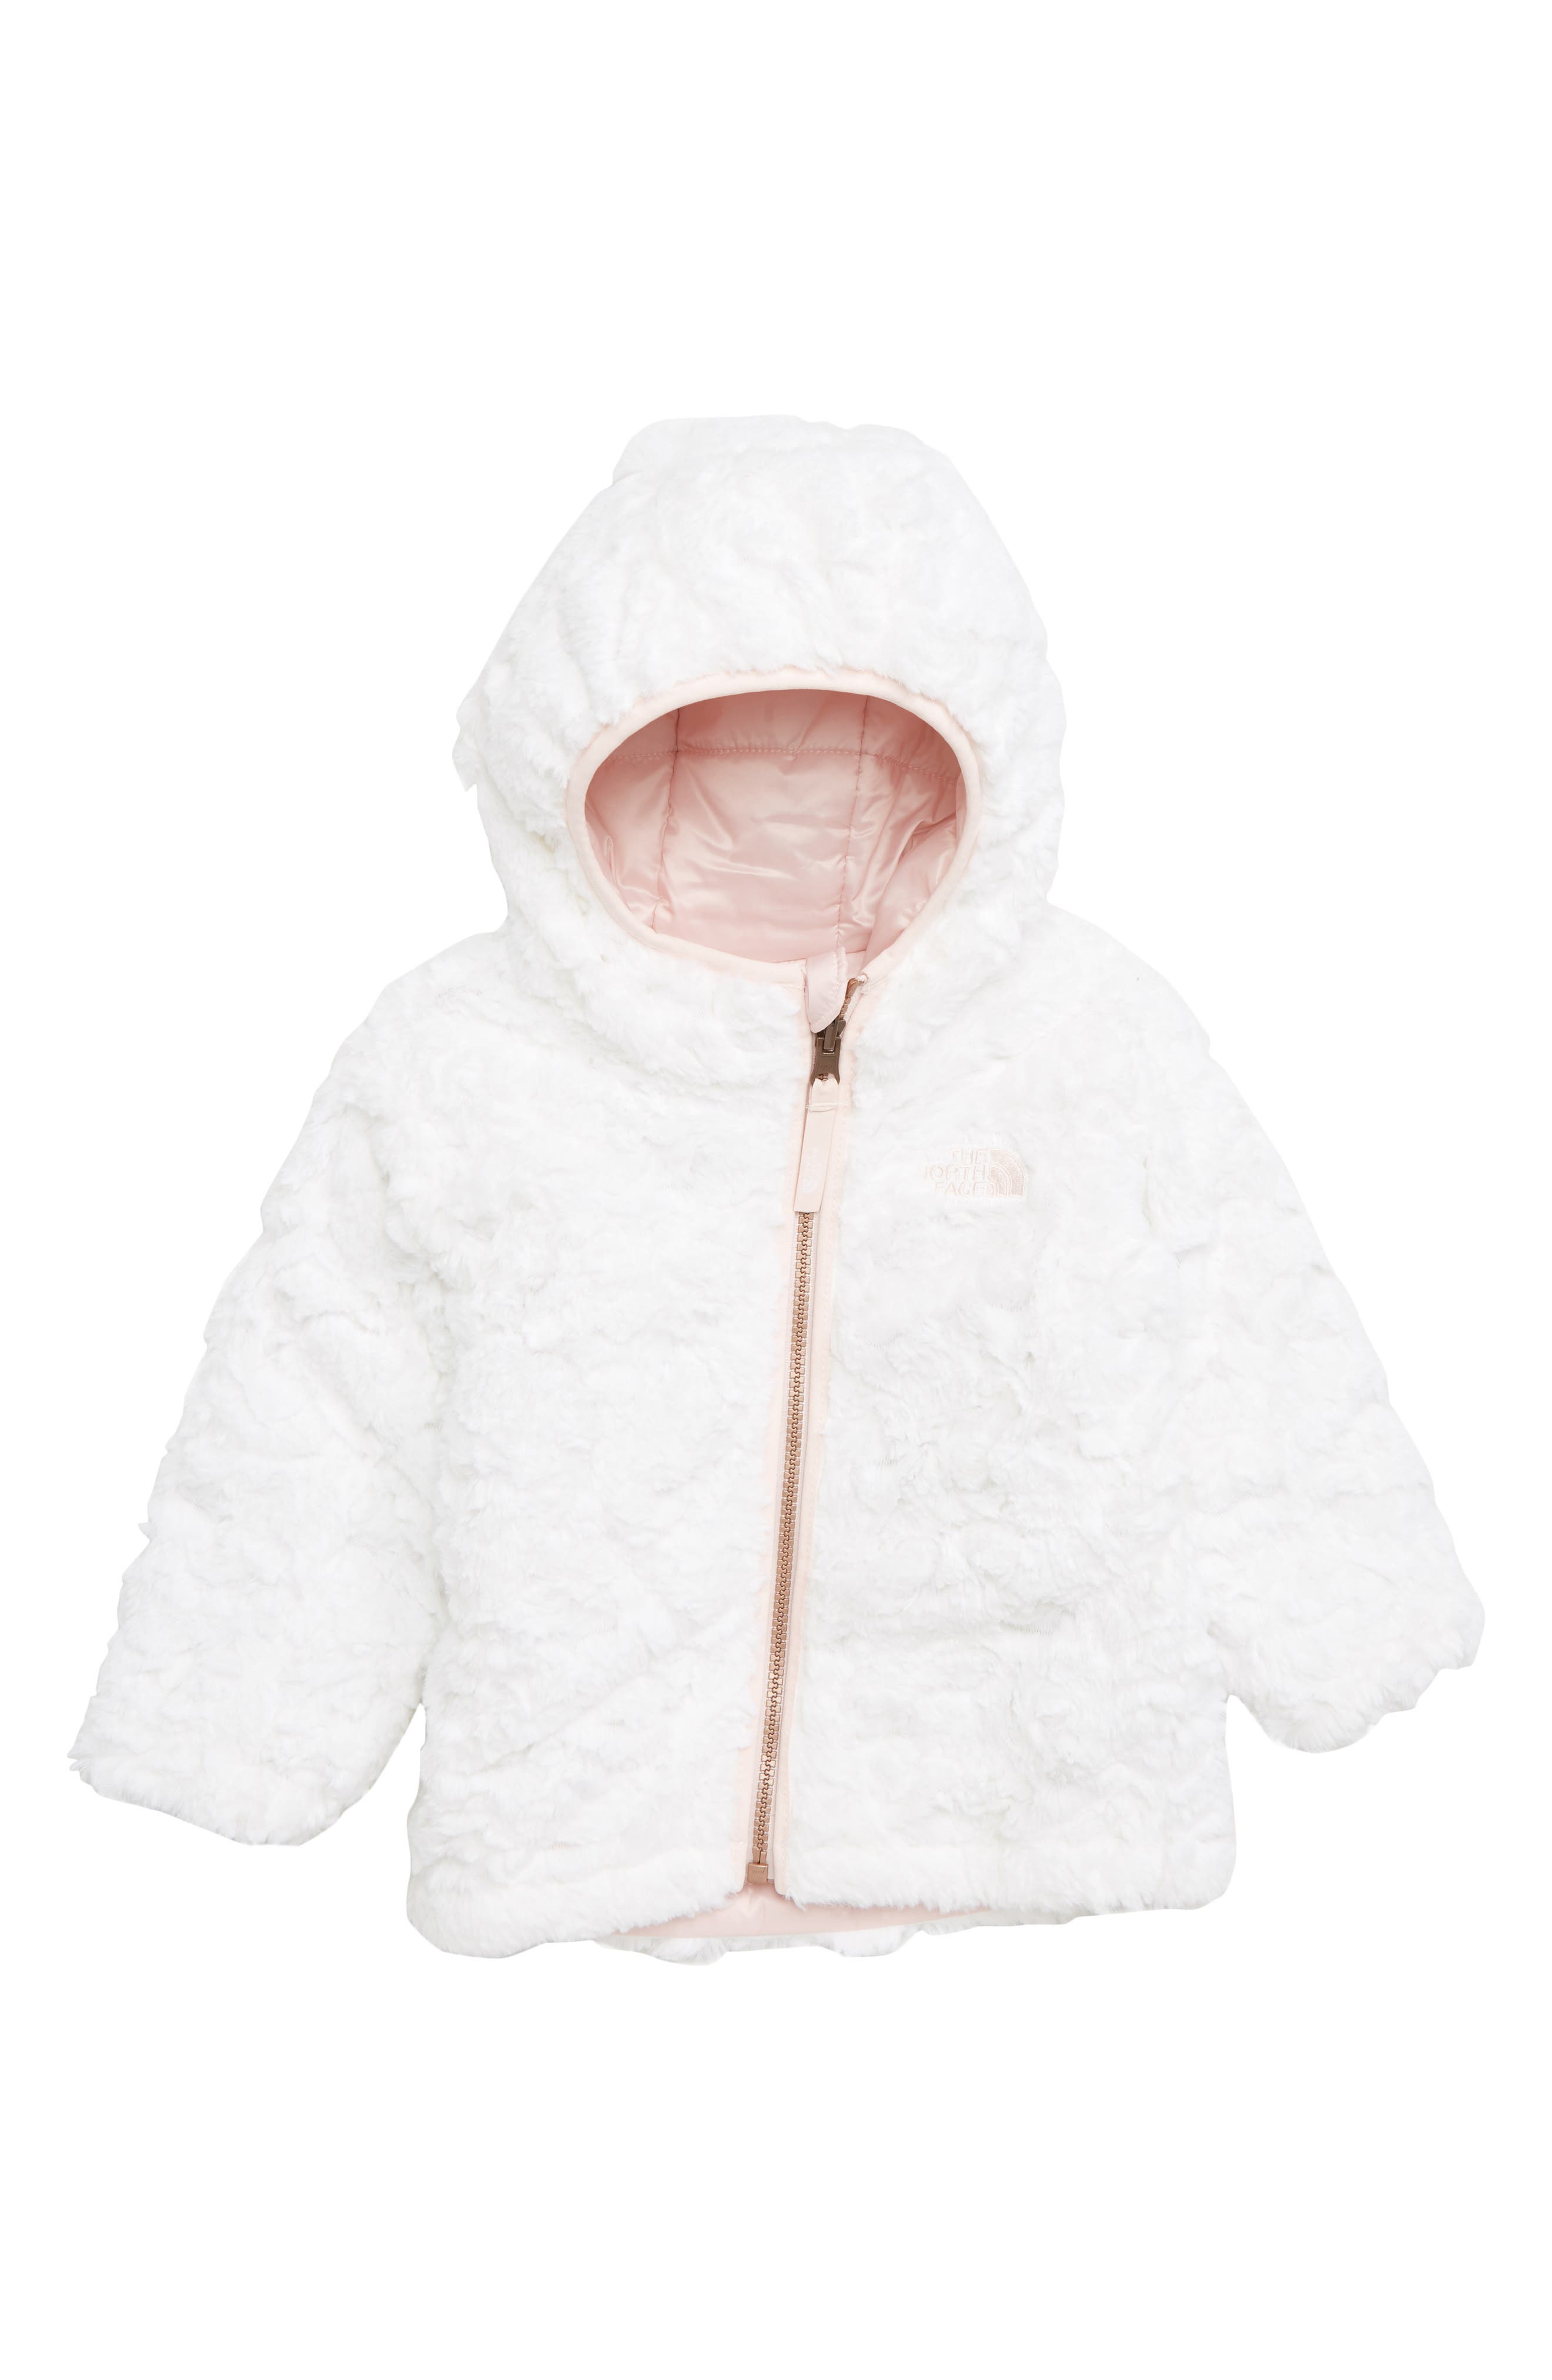 Mossbud Swirl Reversible Water Repellent Jacket,                             Alternate thumbnail 2, color,                             PURDY PINK